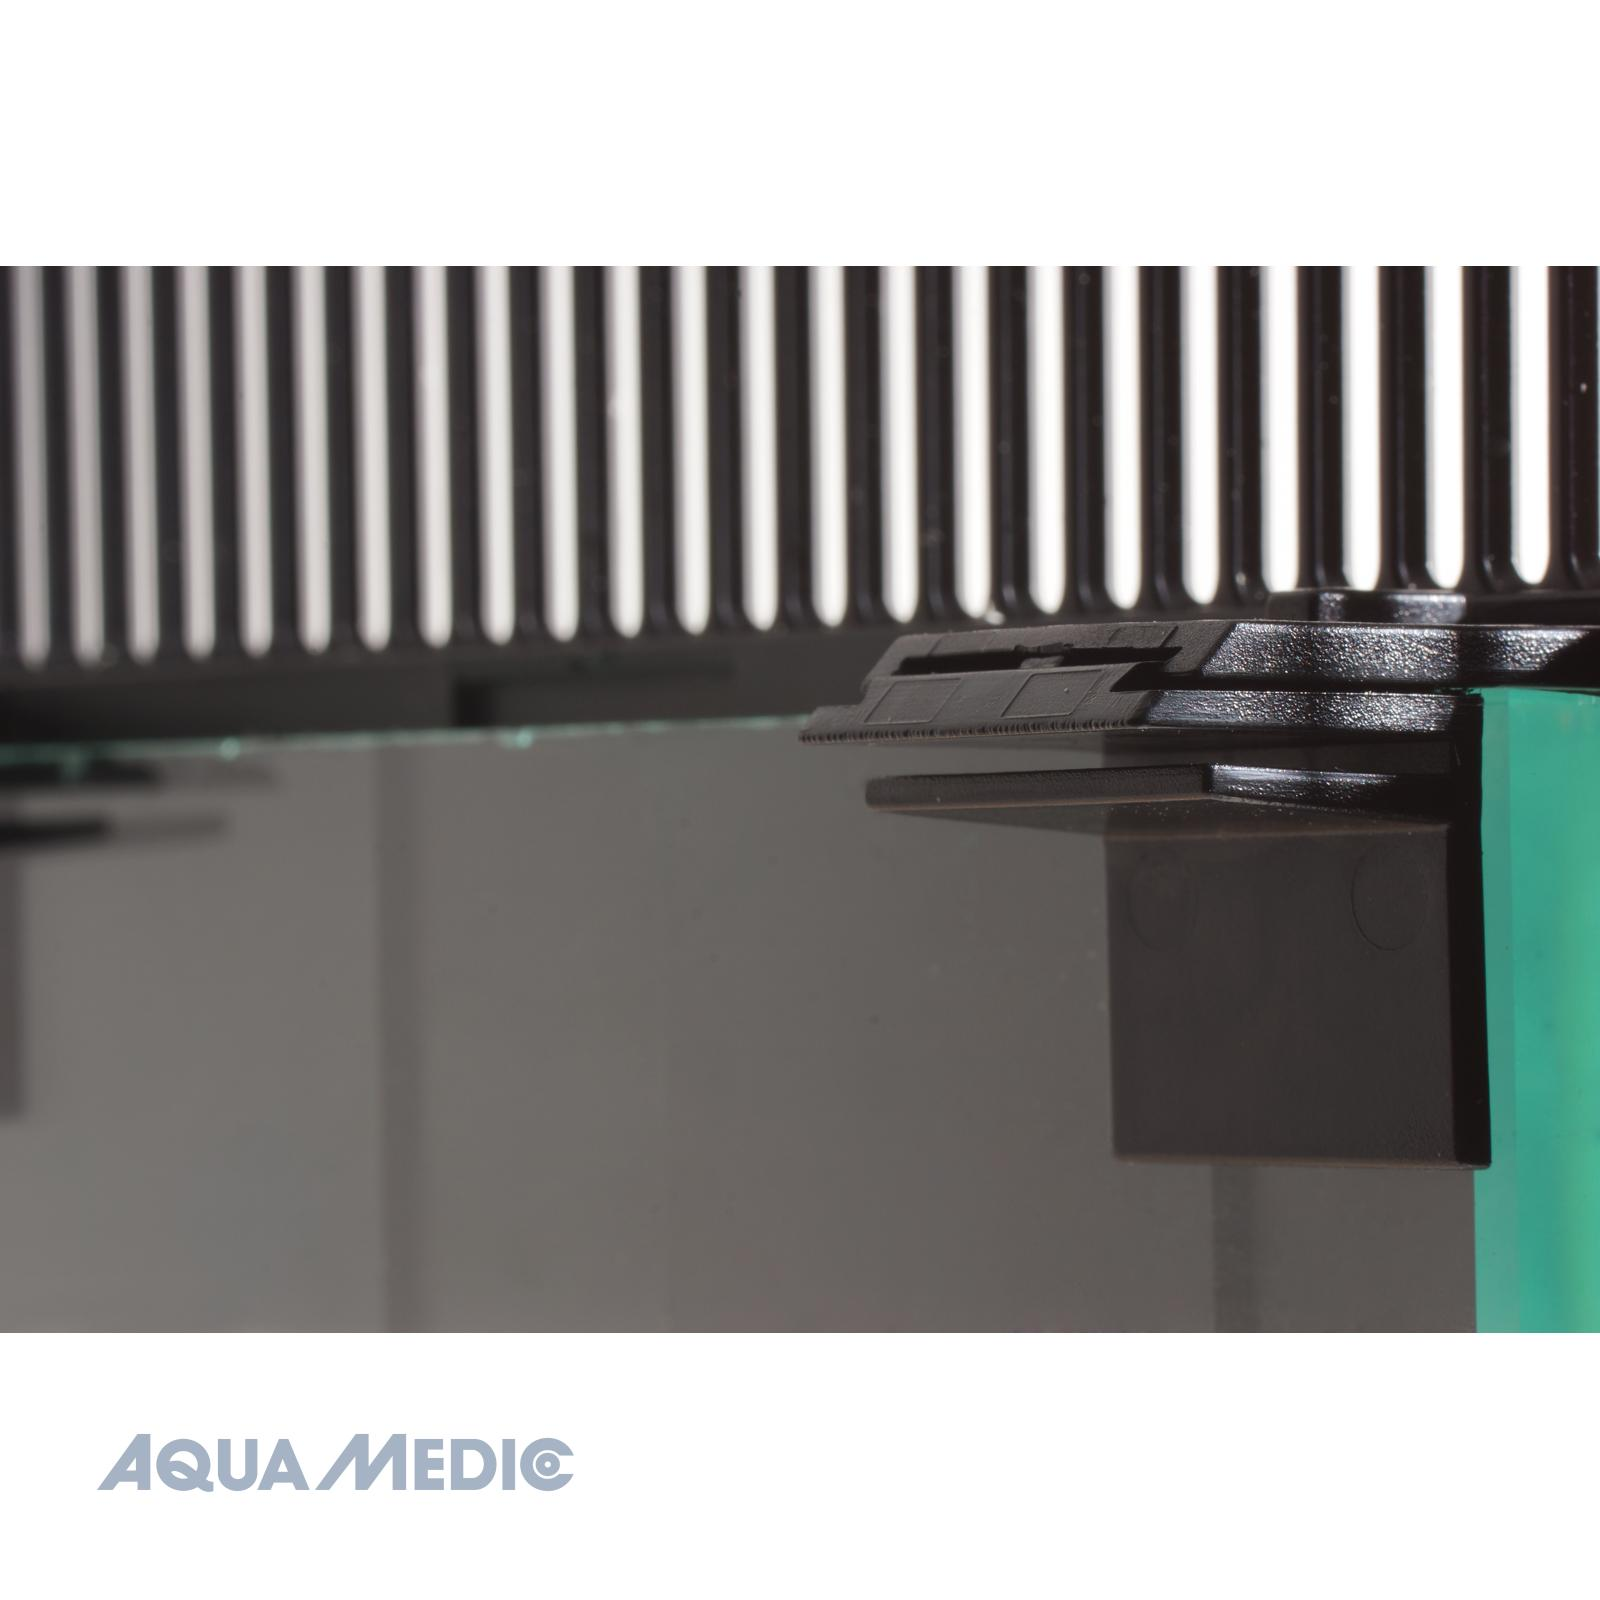 Aqua Medic overflow comb with holder 50 cm